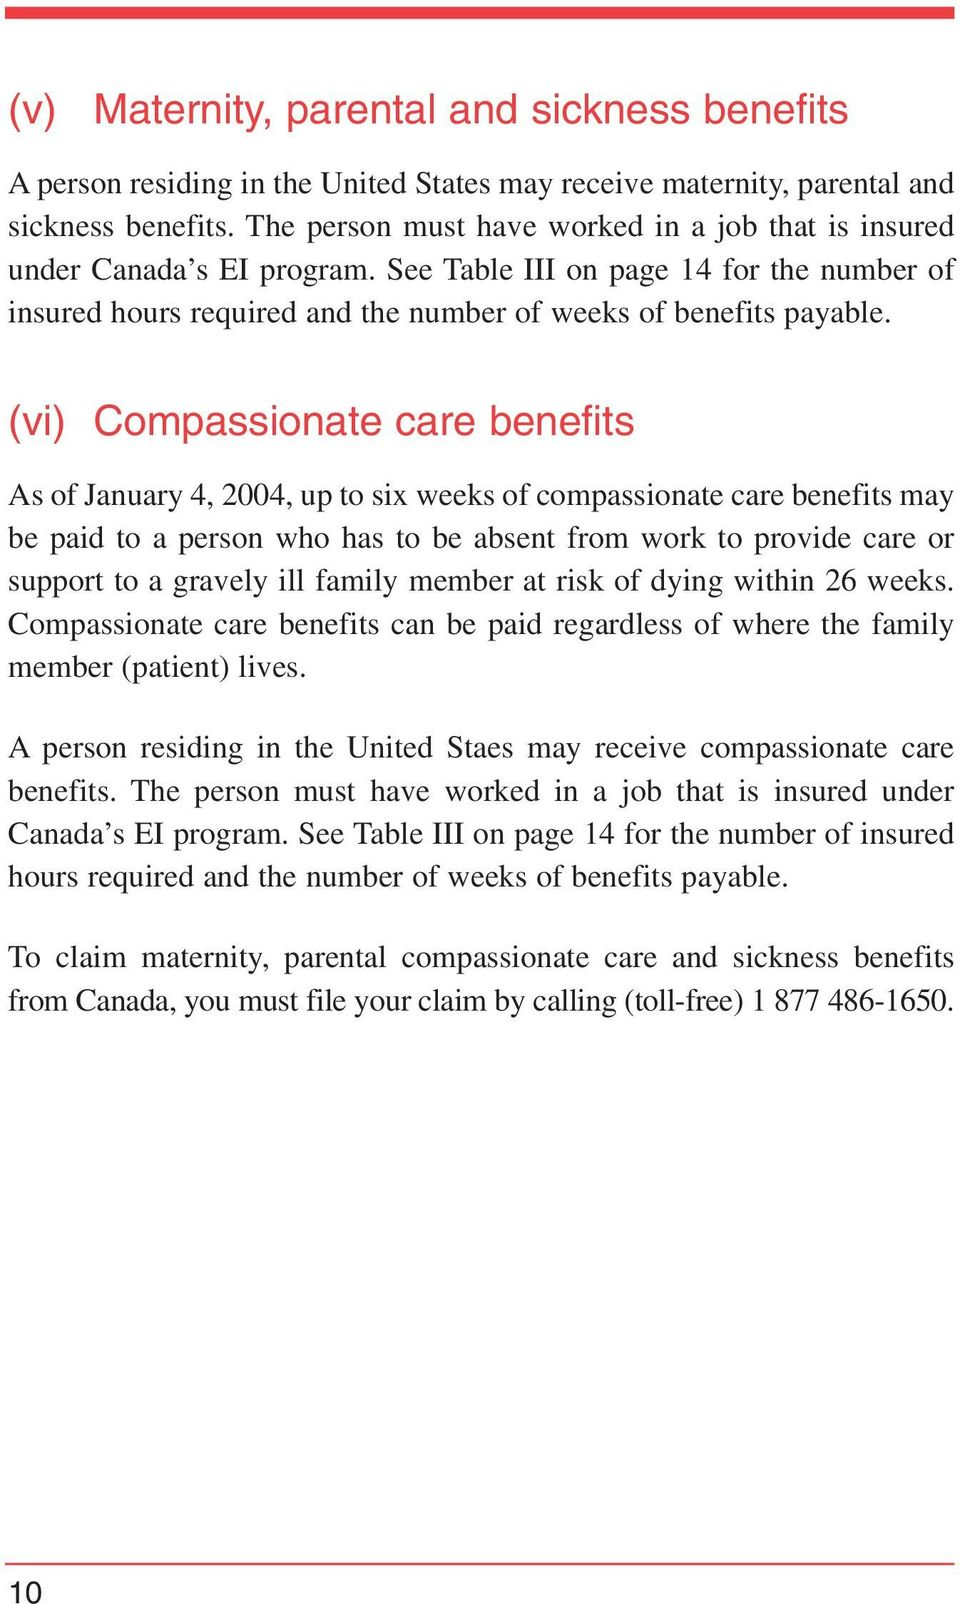 (vi) Compassionate care benefits As of January 4, 2004, up to six weeks of compassionate care benefits may be paid to a person who has to be absent from work to provide care or support to a gravely